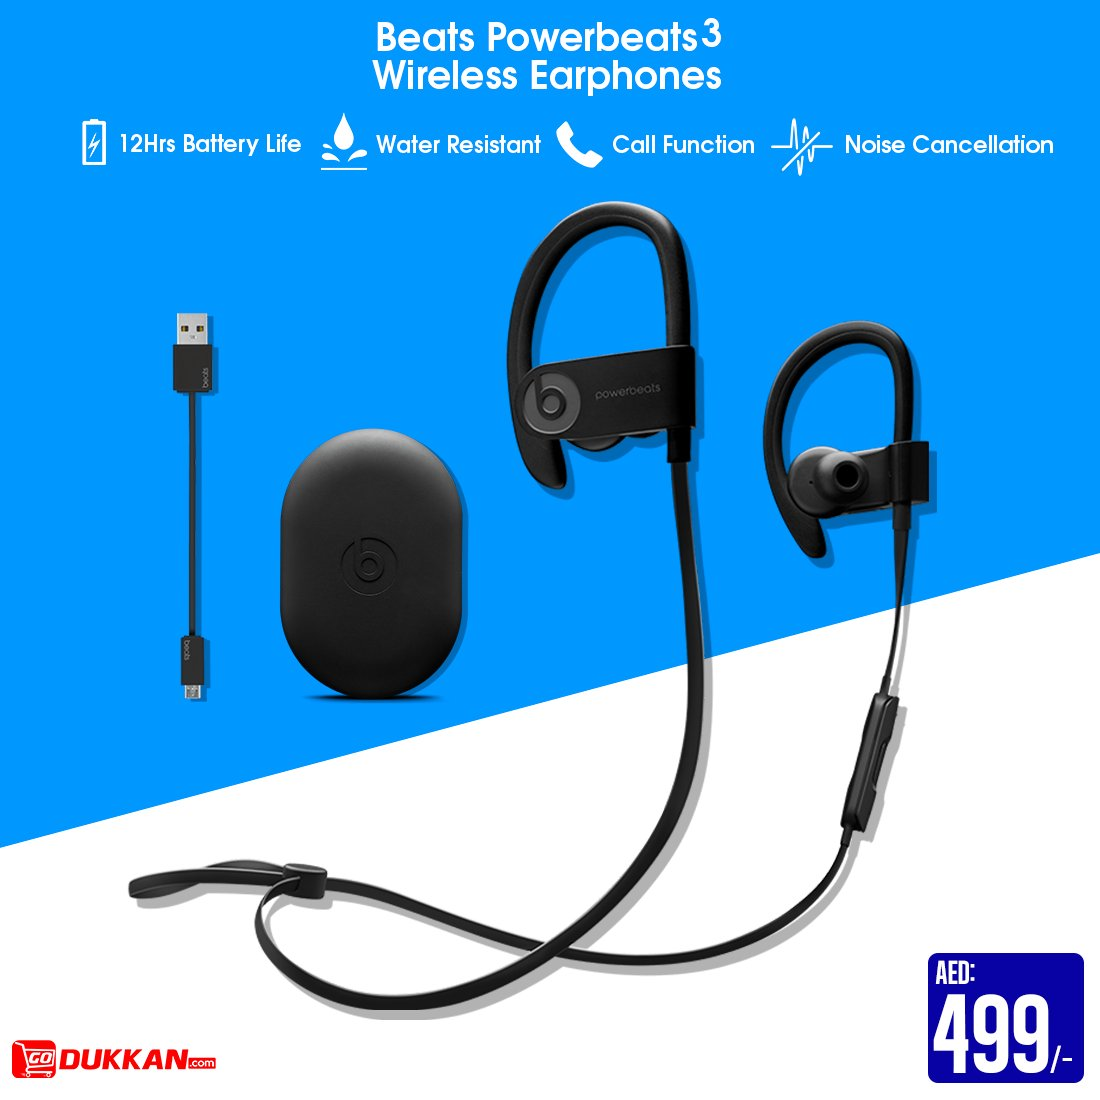 339b09fed0a ... Premium Quality | #Beats #Powerbeats3 Wireless Earphones @ AED:499/- |  12Hrs Battery #Life | Water Resistance | Call Function | Noise Cancellation  | For ...